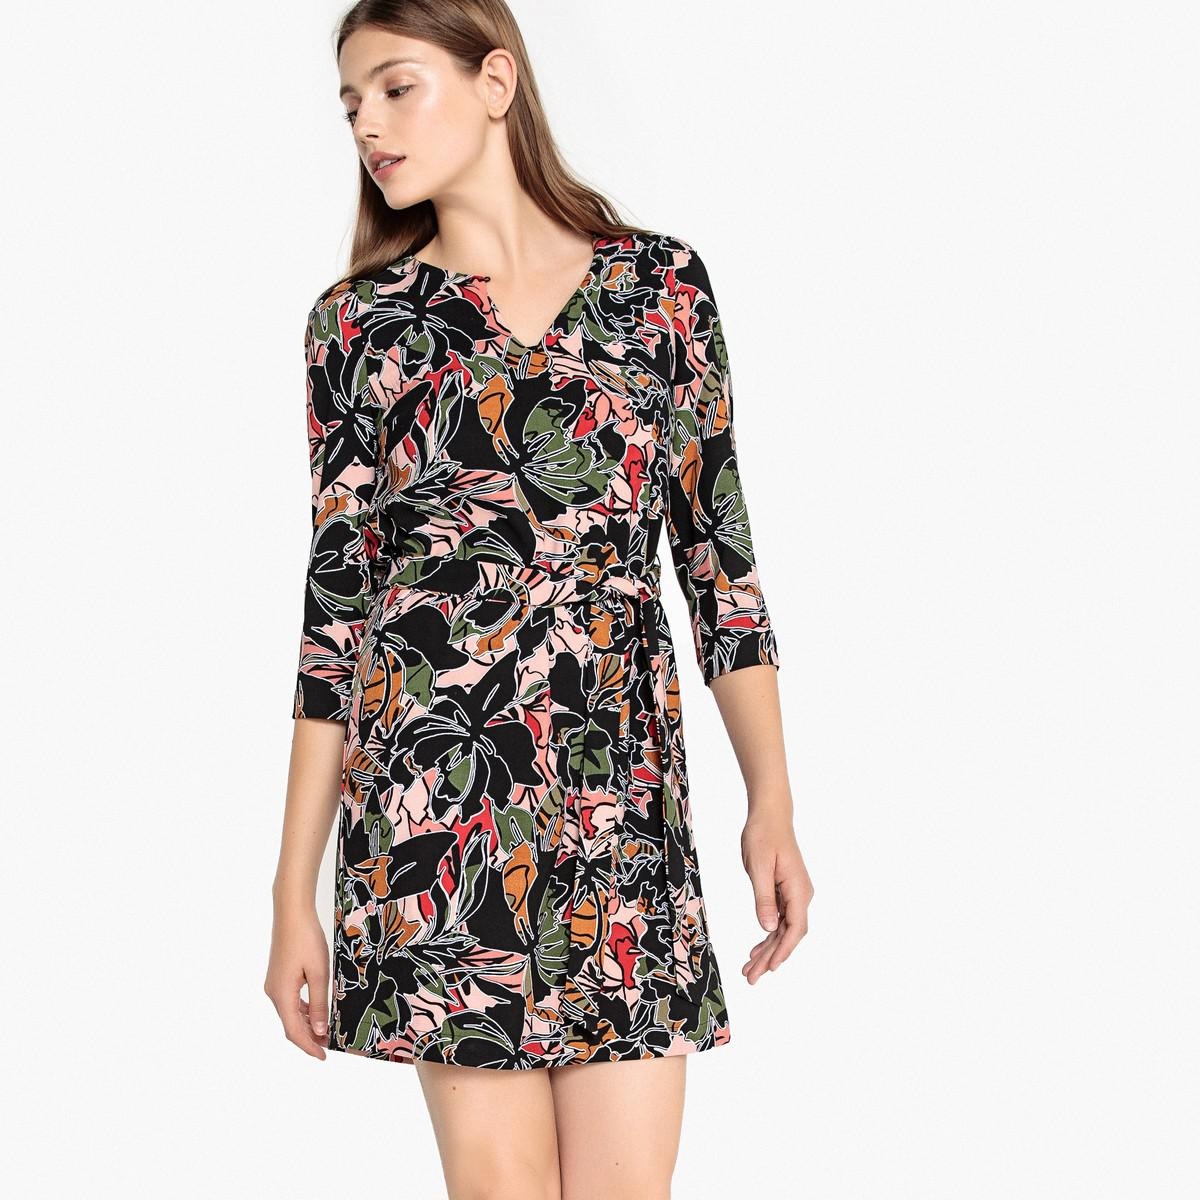 c0085e40d8 Lyst - Suncoo Candy Floral Print Dress With 3 4 Length Sleeves And ...